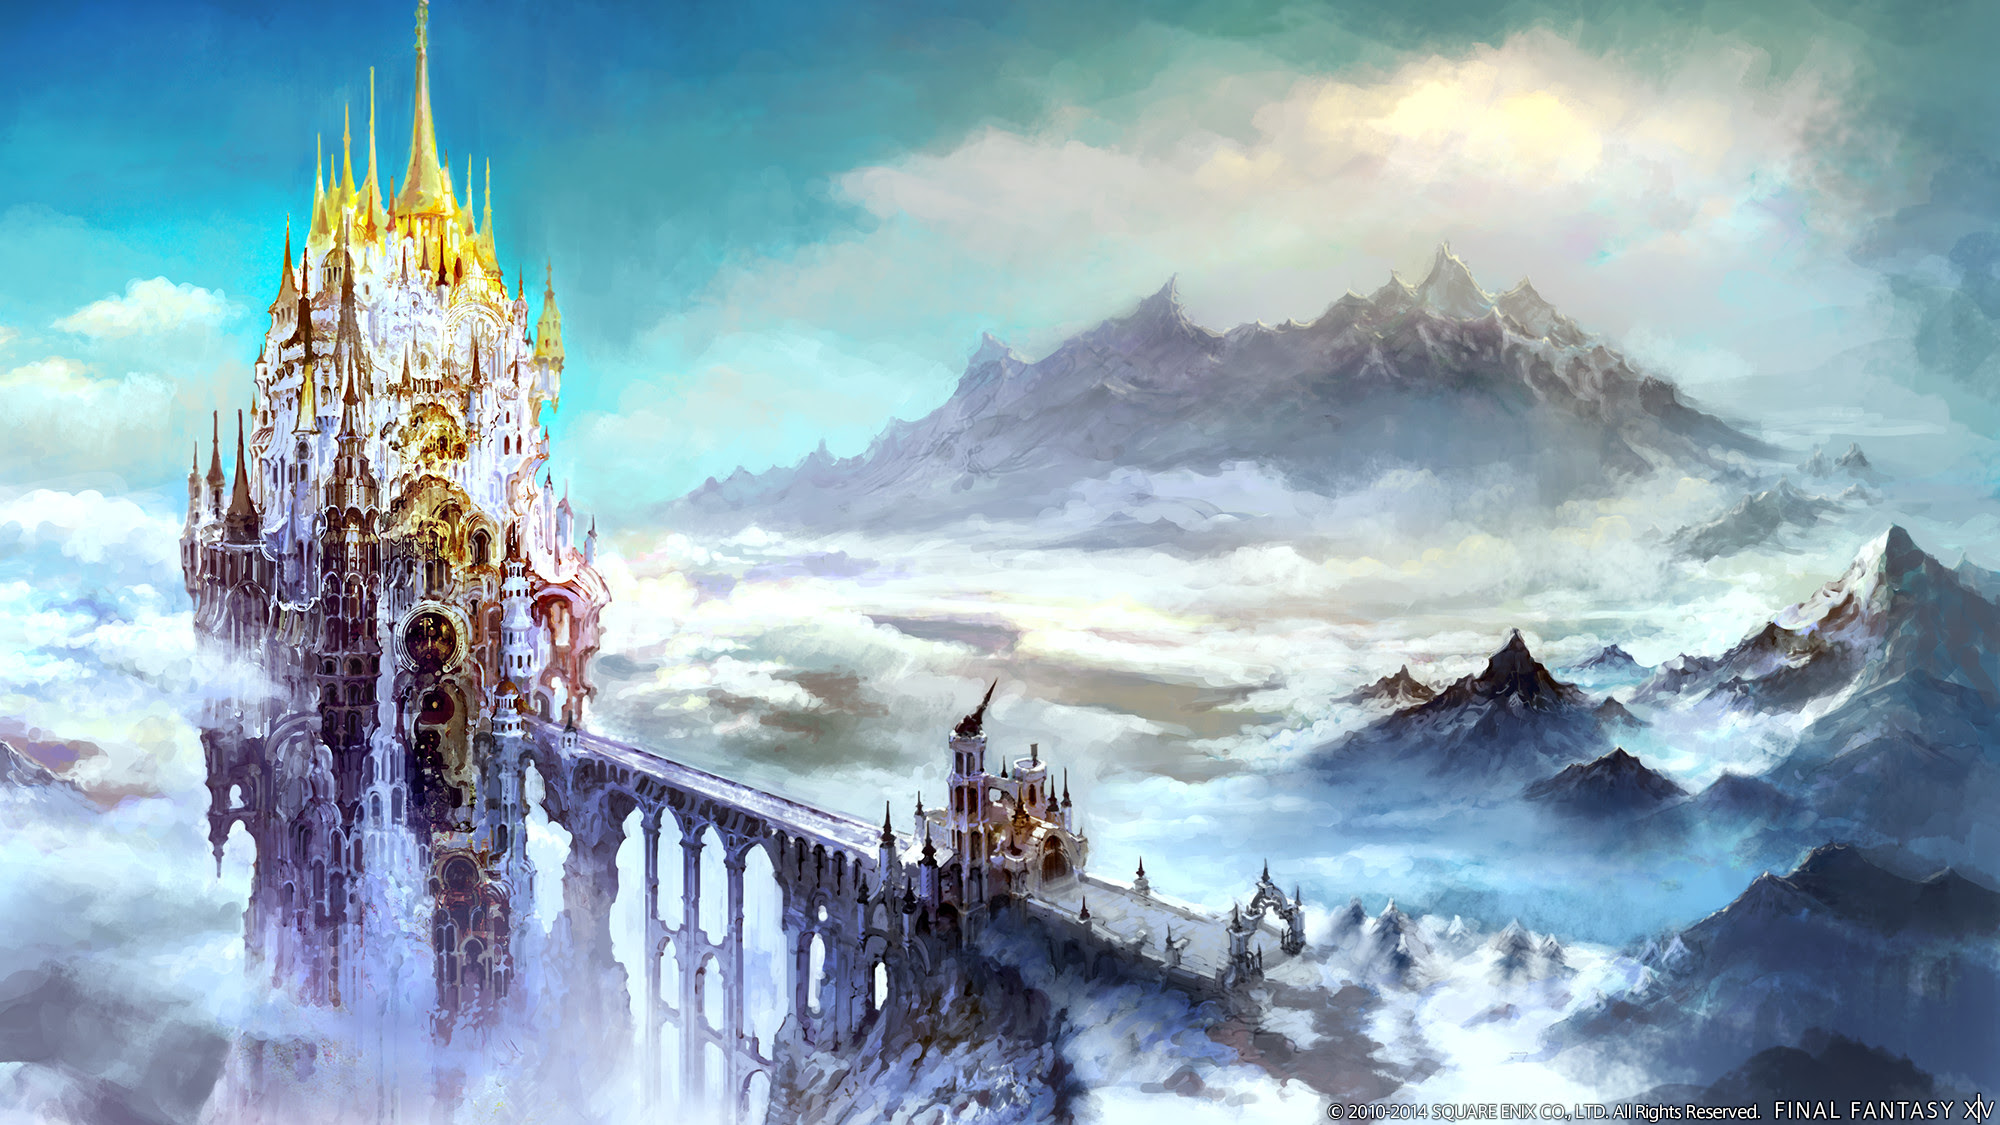 Unduh 720 Koleksi Final Fantasy Wallpaper Pictures Terbaik